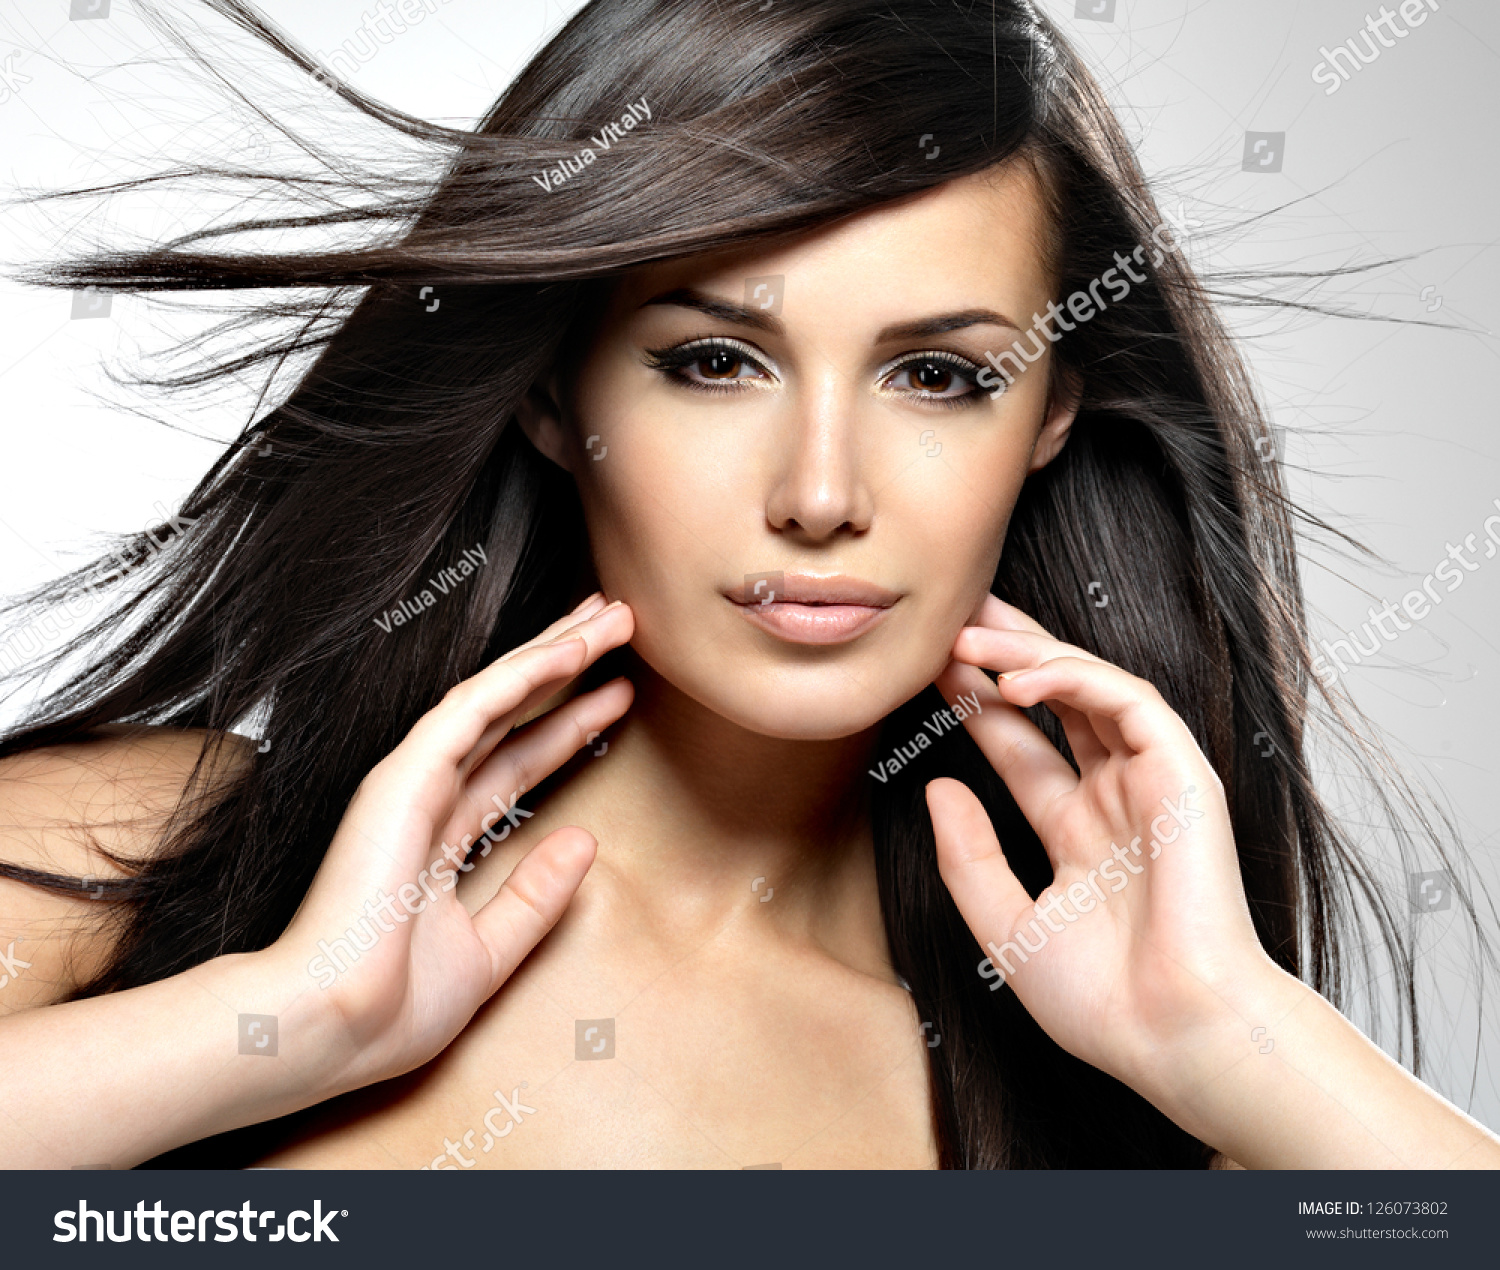 beautiful woman long brown hair closeup stock photo 126073802 shutterstock. Black Bedroom Furniture Sets. Home Design Ideas